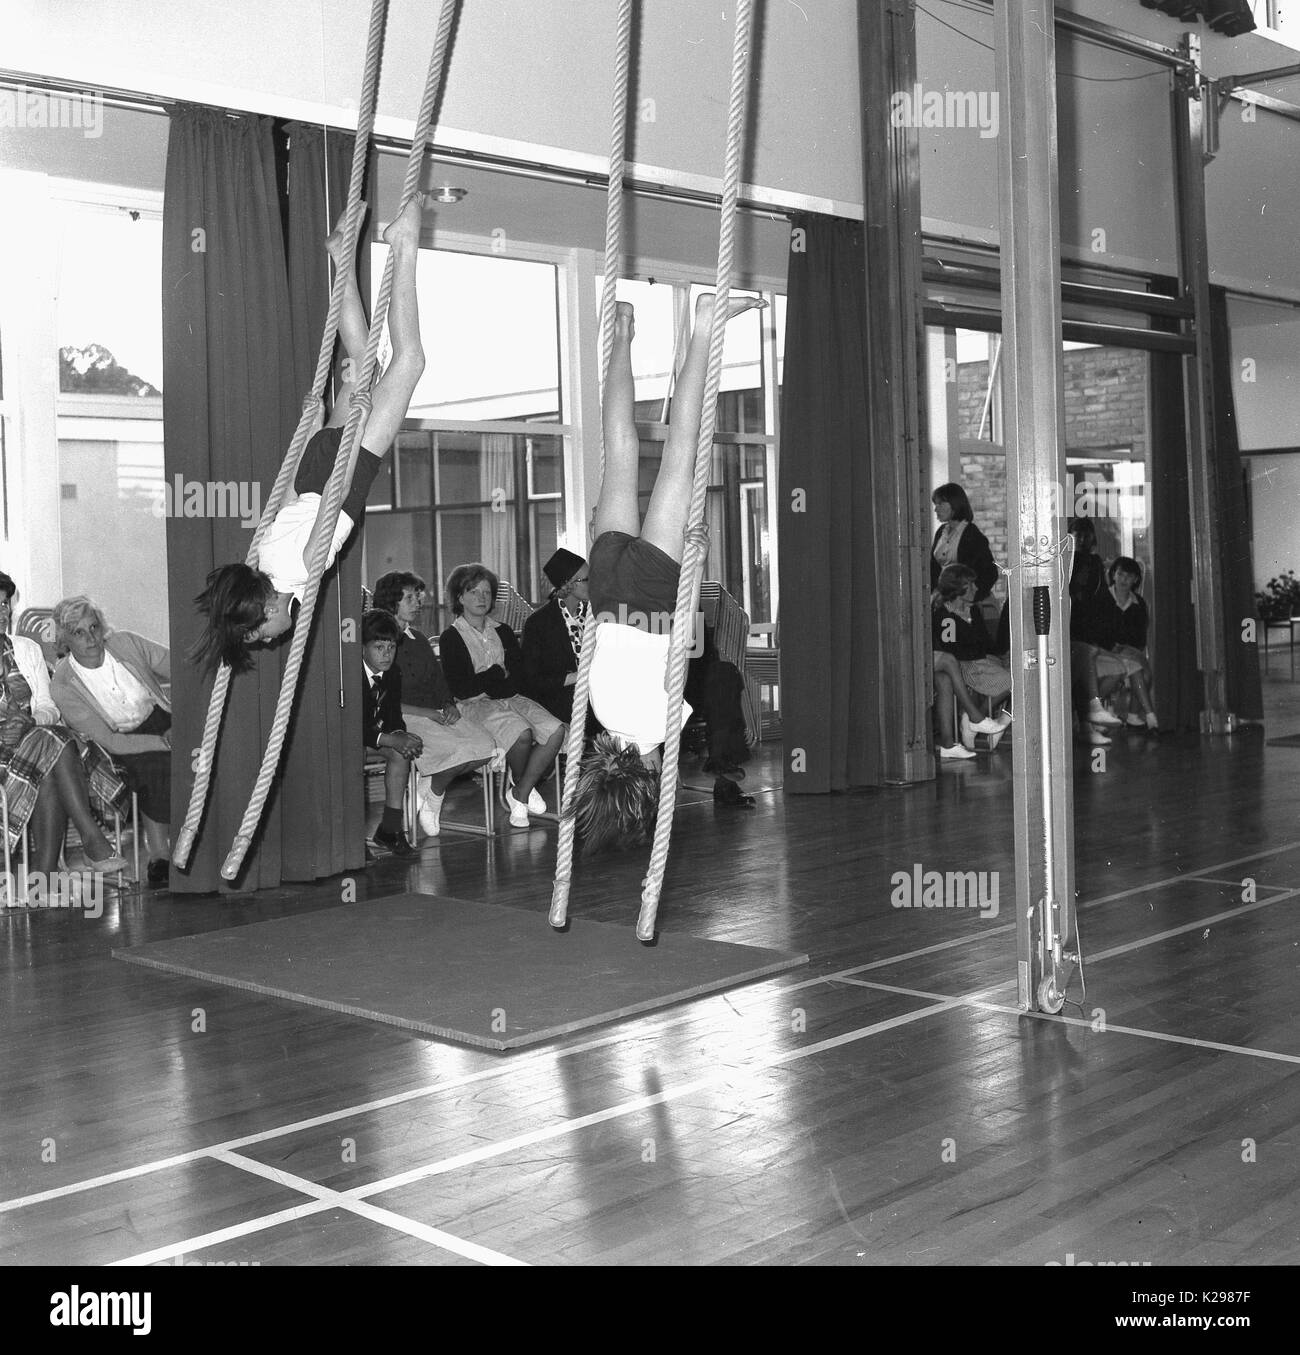 1960s, historical, picture shows two school girl gymnasts in tradittional PE kit performing an artistic routine on the climbing ropes infront of parents, England, UK. - Stock Image